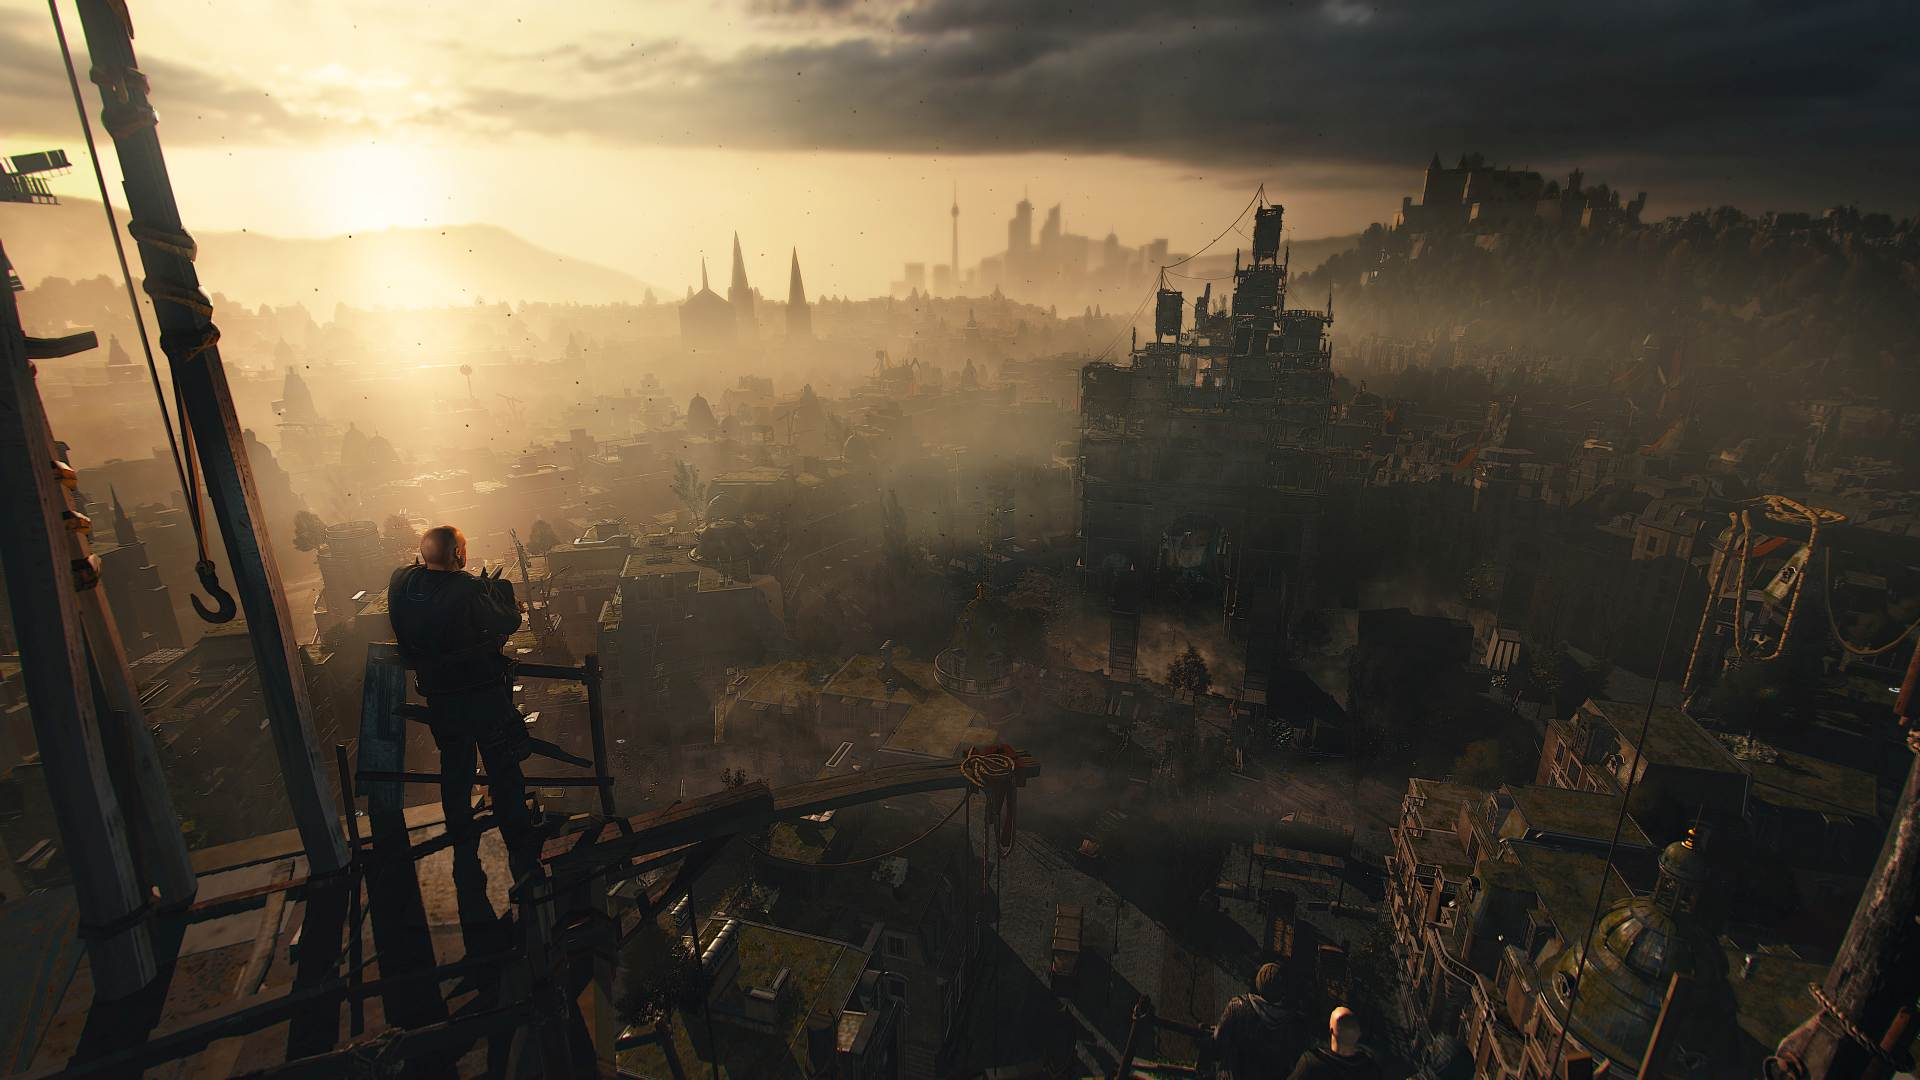 Dying Light 2's lead game designer answers some community questions, including the lack of firearms screenshot